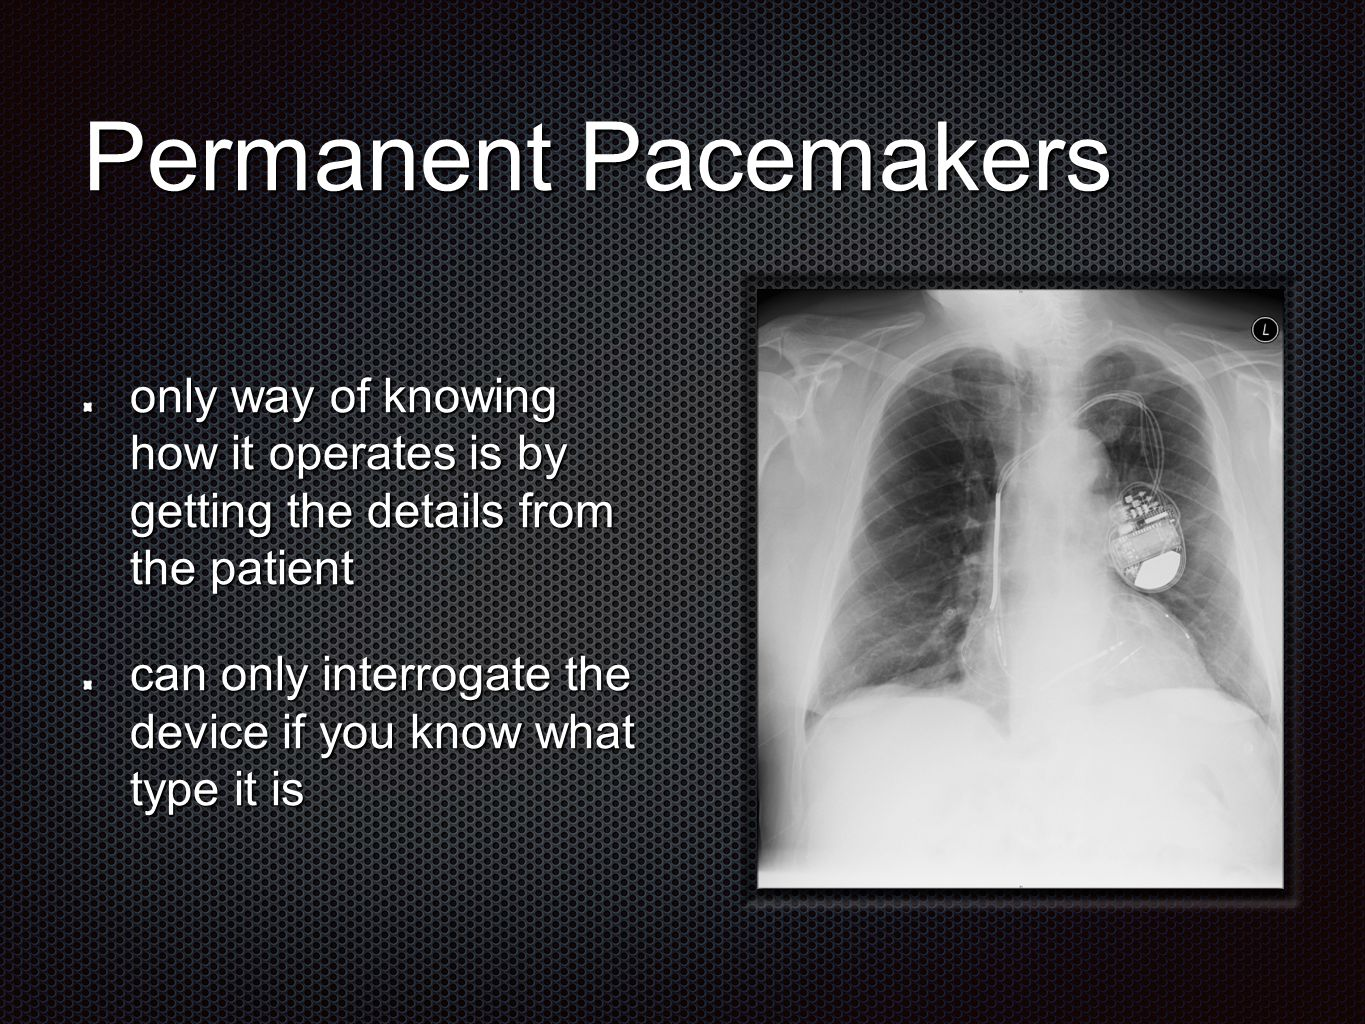 Transvenous pacing sterile technique multiple routes best to avoid L sub clavian as this route most commonly used for permanent pacemaker